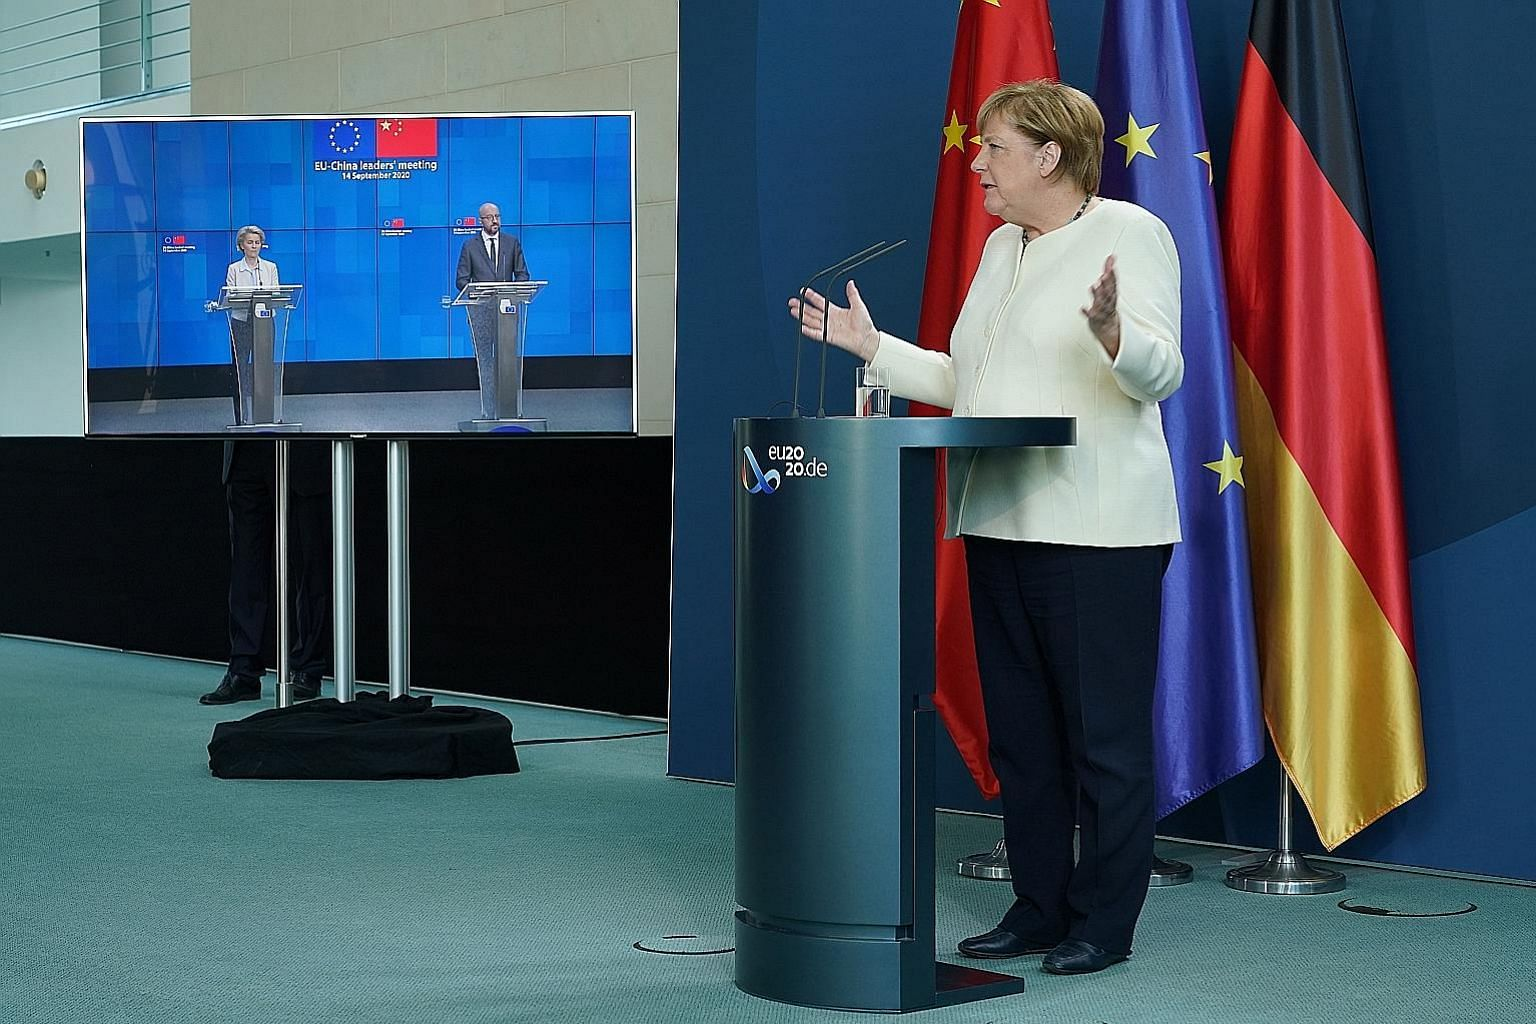 German Chancellor Angela Merkel (right), along with European Commission president Ursula von der Leyen and European Council president Charles Michel (both tuning in via video-link from Brussels), speaking to the media following a video-linked meeting